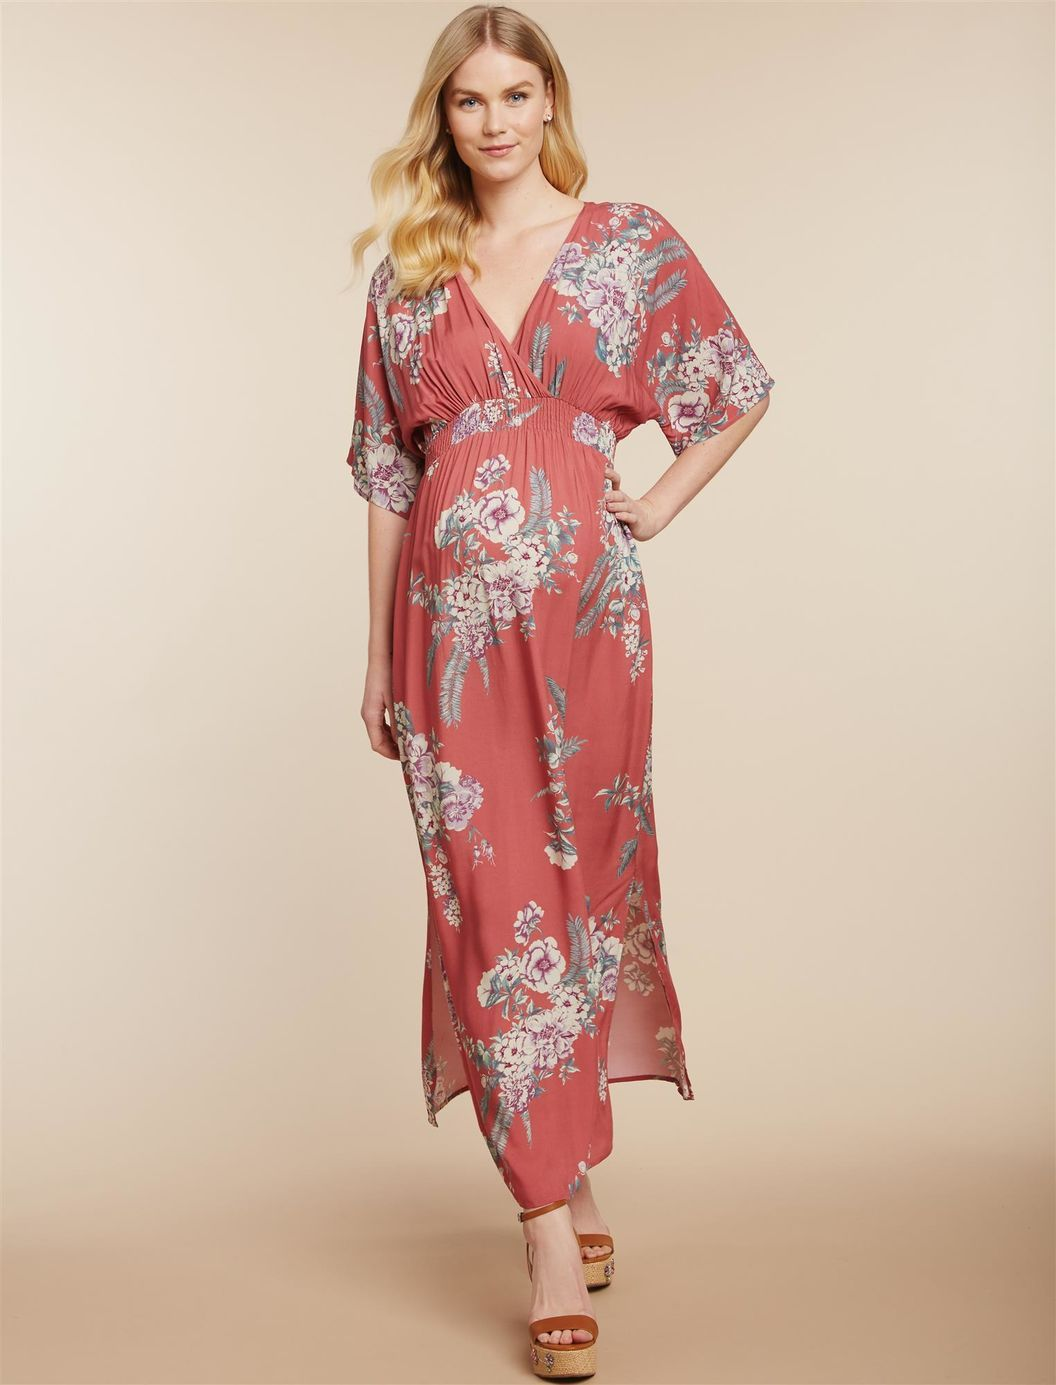 8f1ccca942d6 Baby Bump Style. Maternity Outfits. Jessica Simpson Smocked Waist Maternity  Maxi Dress